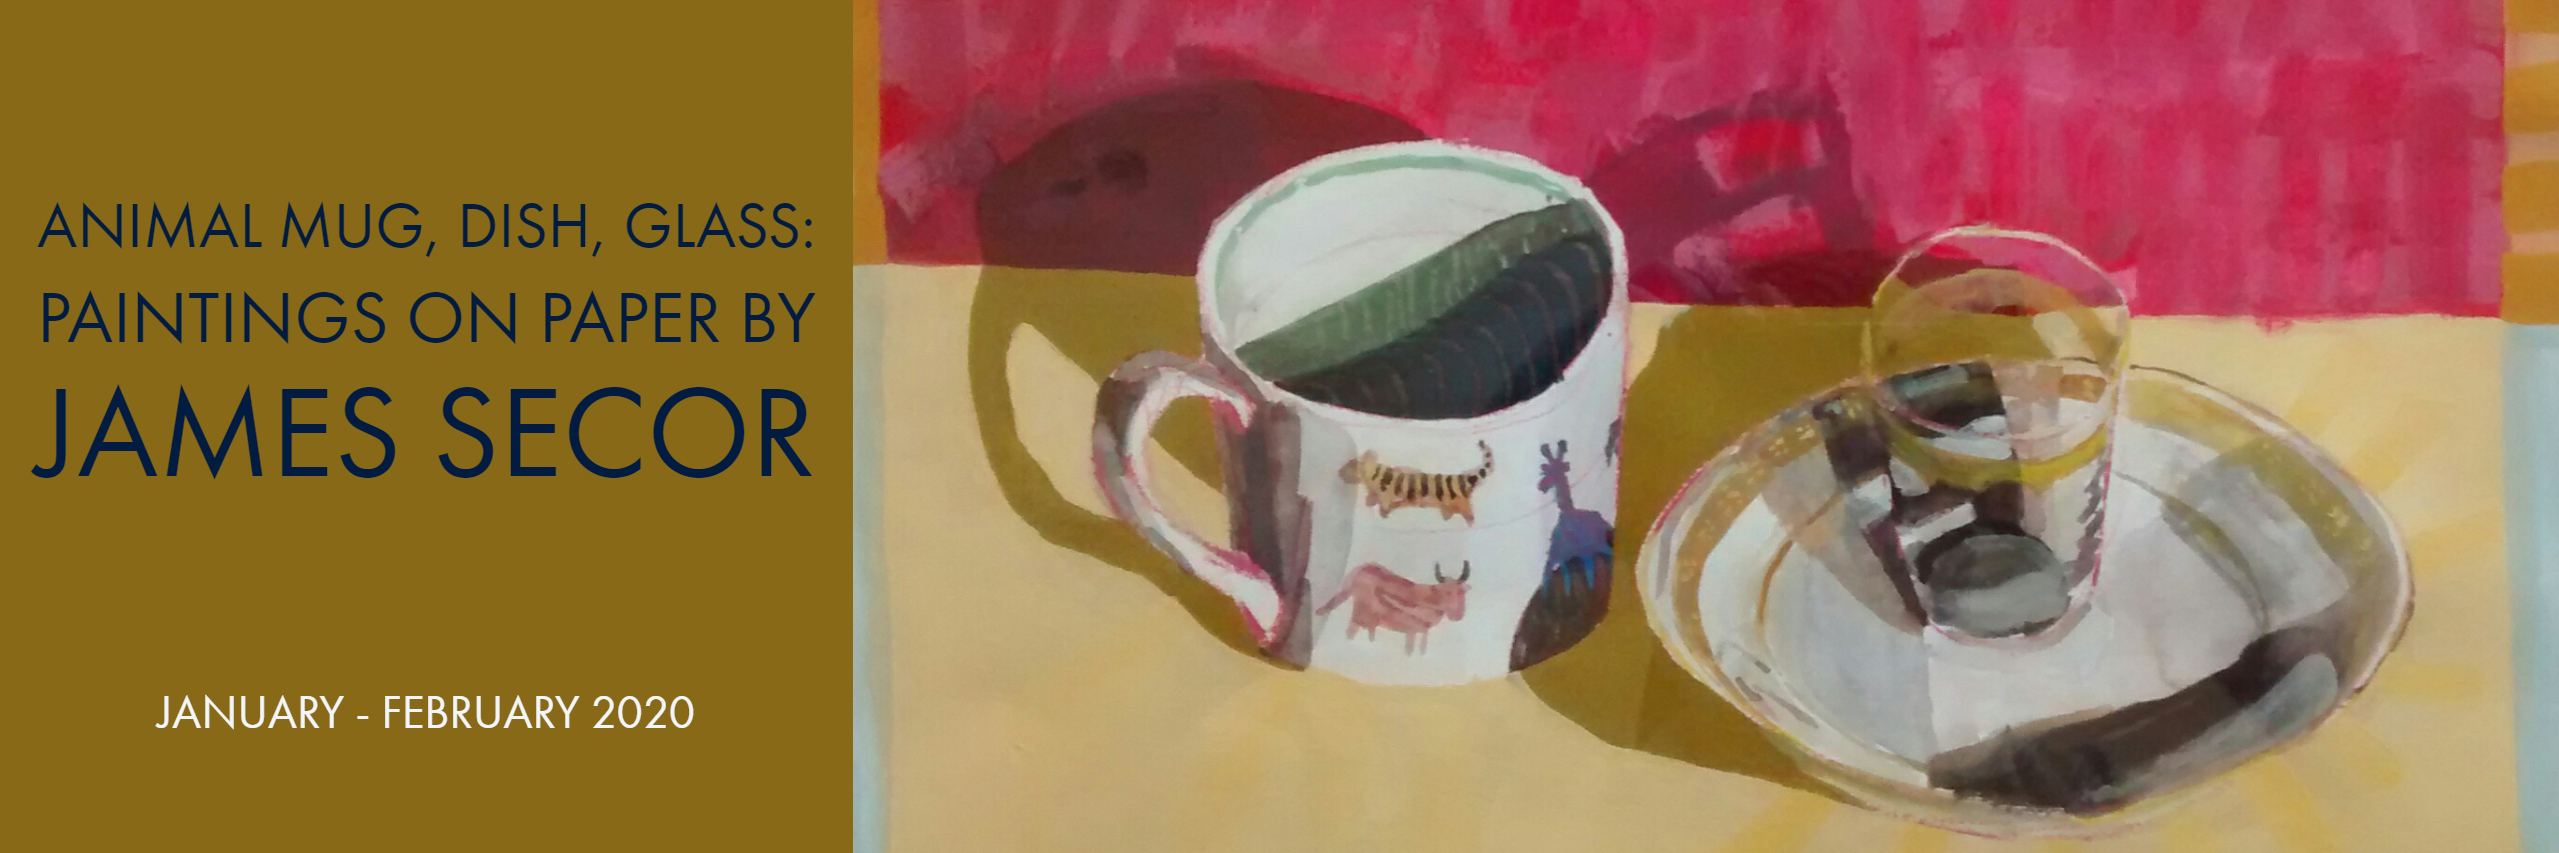 animal mug, dish, glass: paintings on paper by James Secor